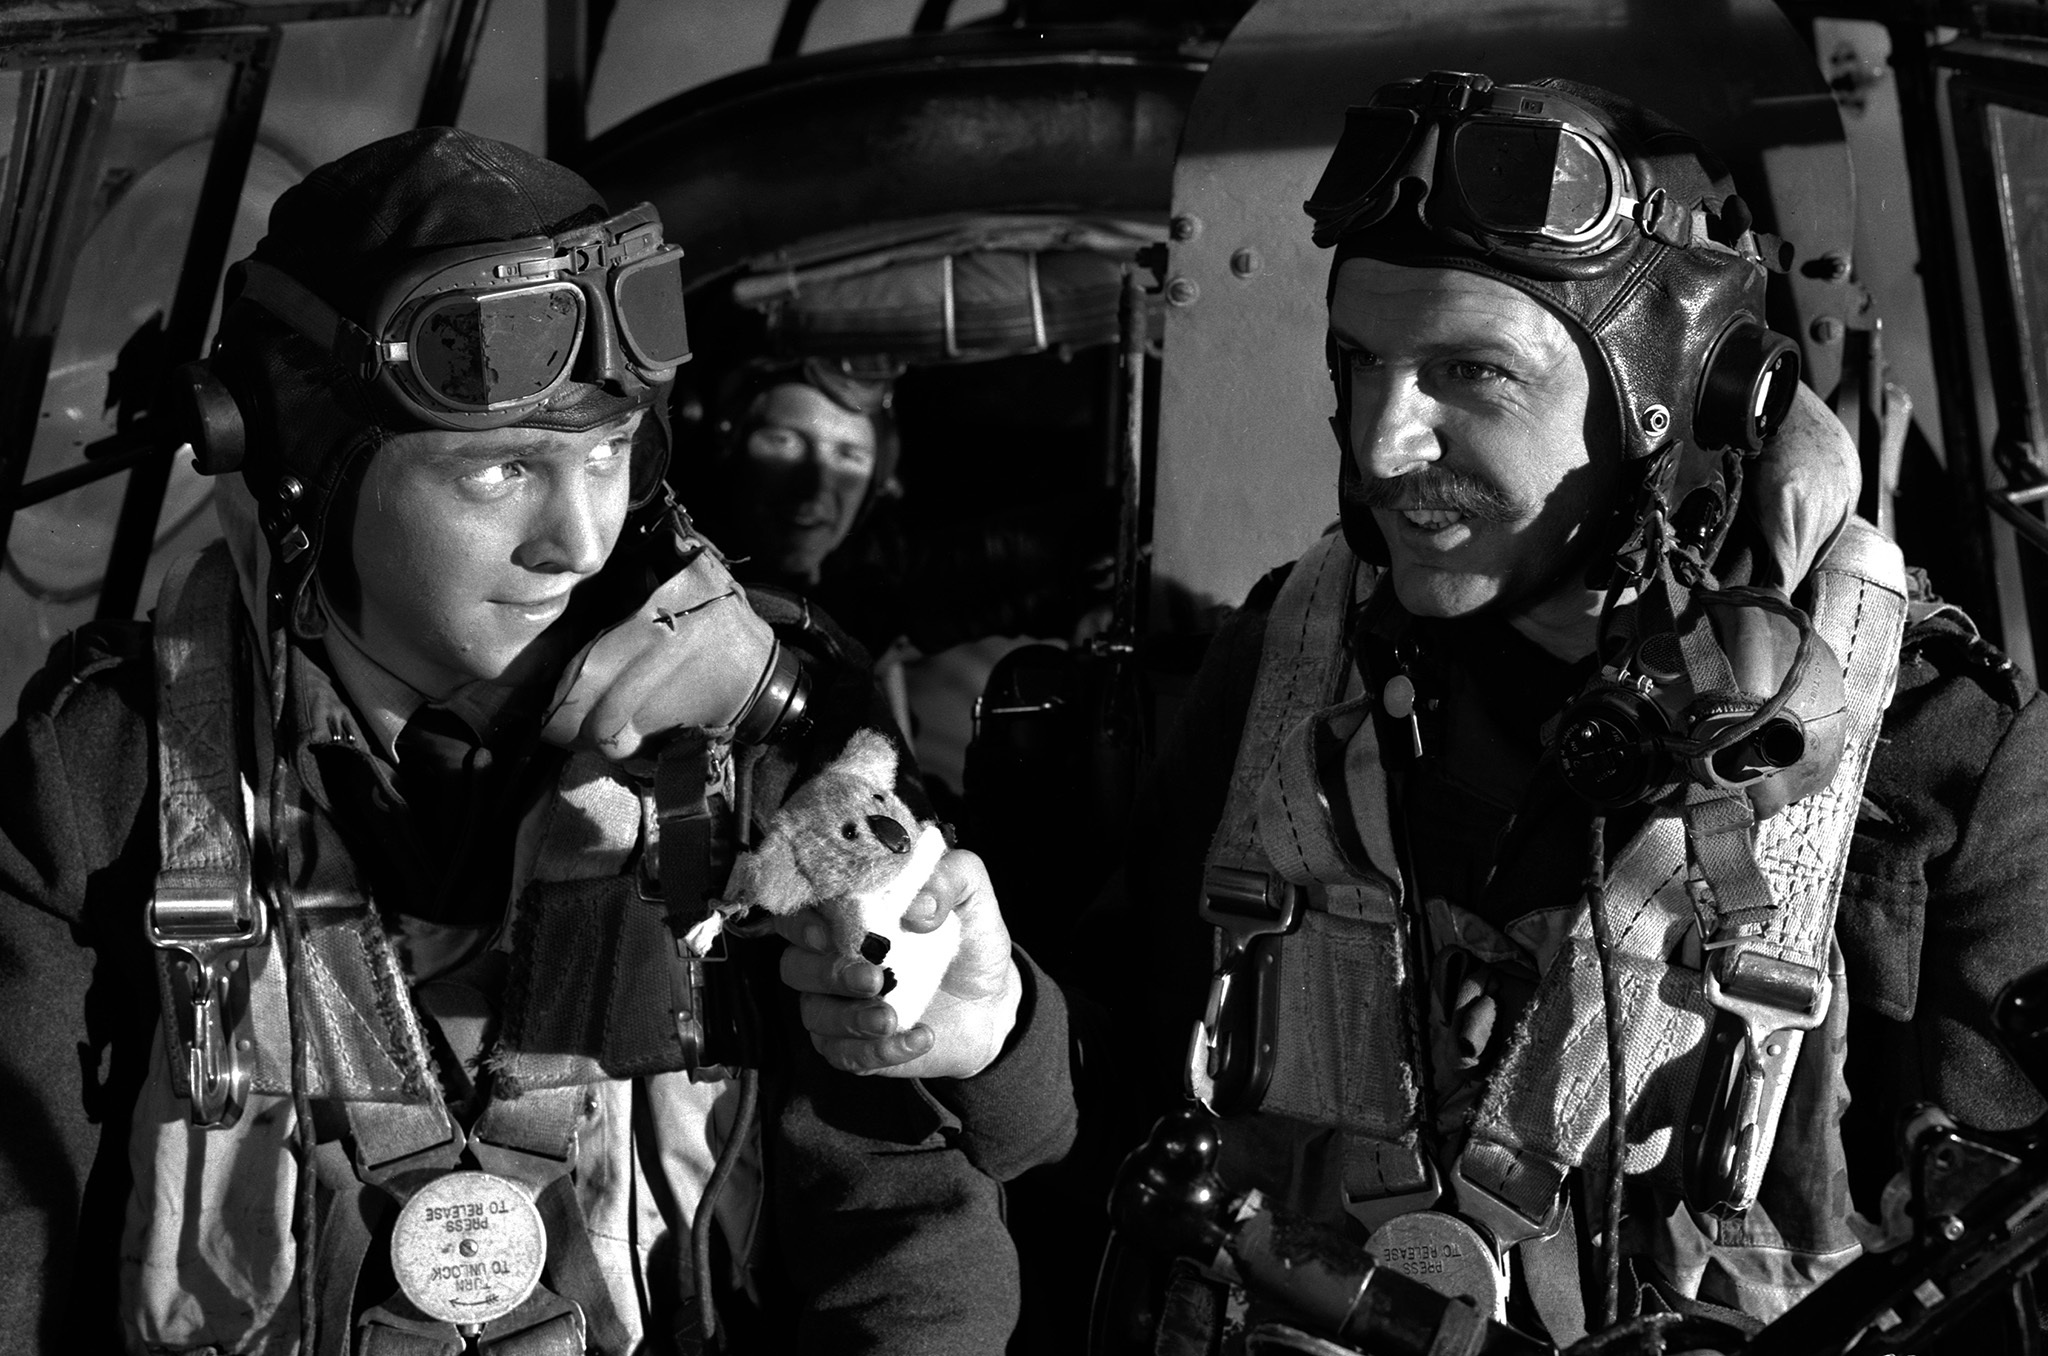 Best World War II movies: The Dam Busters